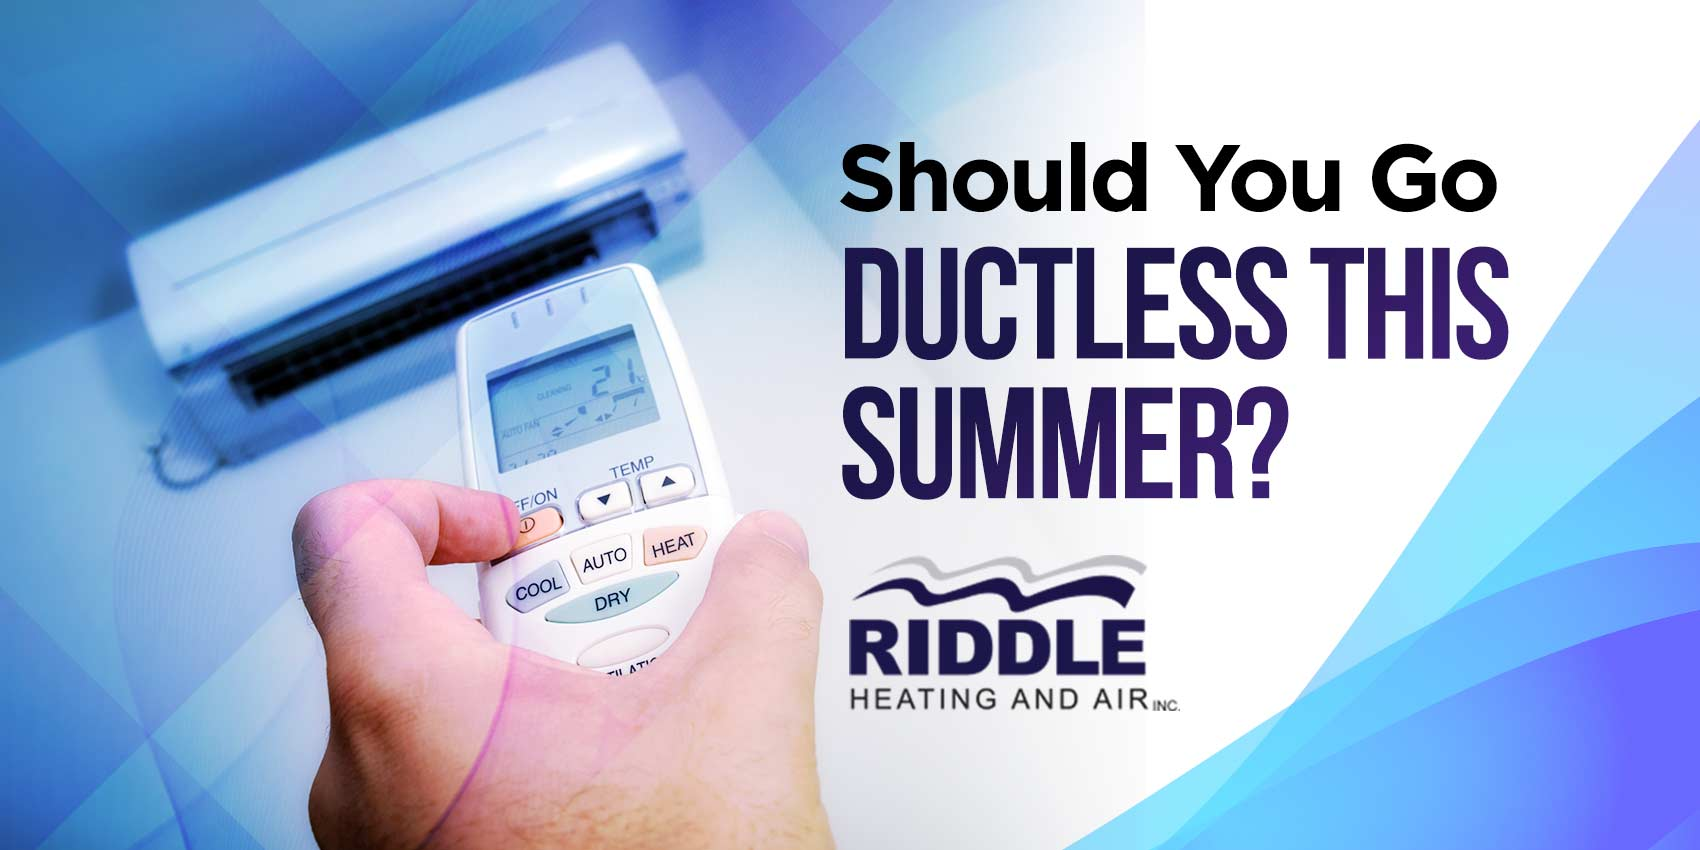 Should You Go Ductless This Summer?